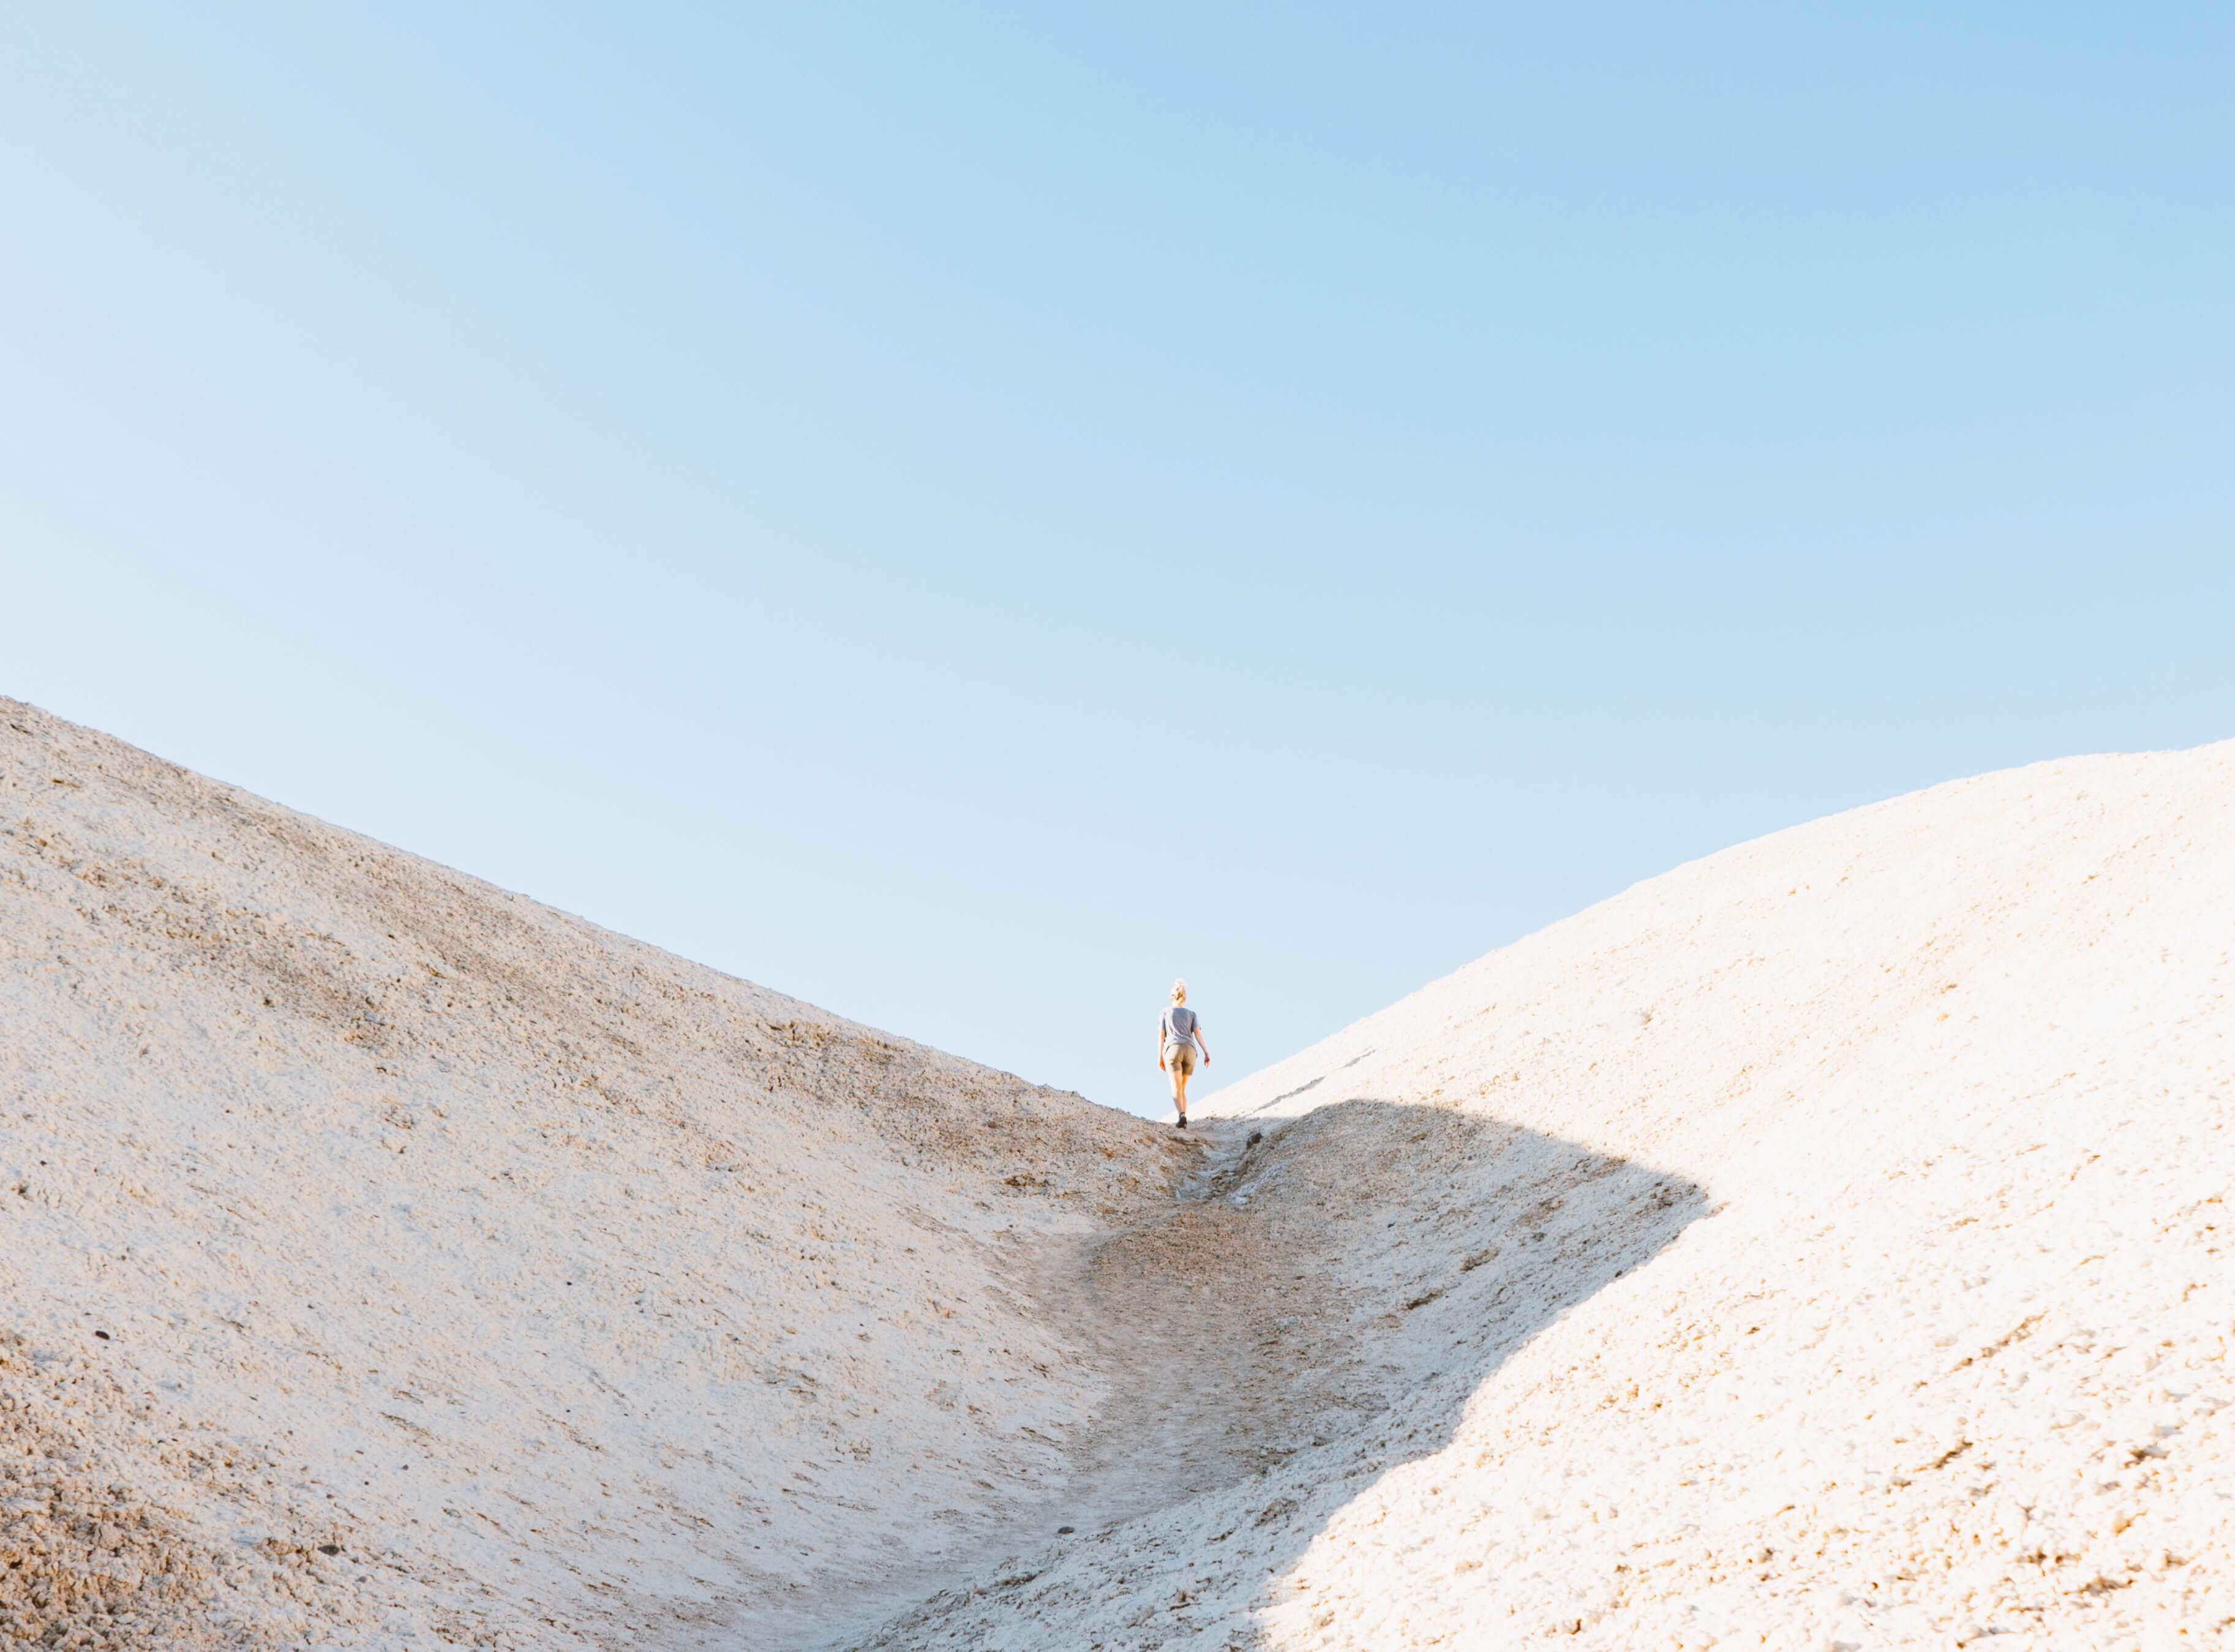 Someone climbing a hill in an arid landscape